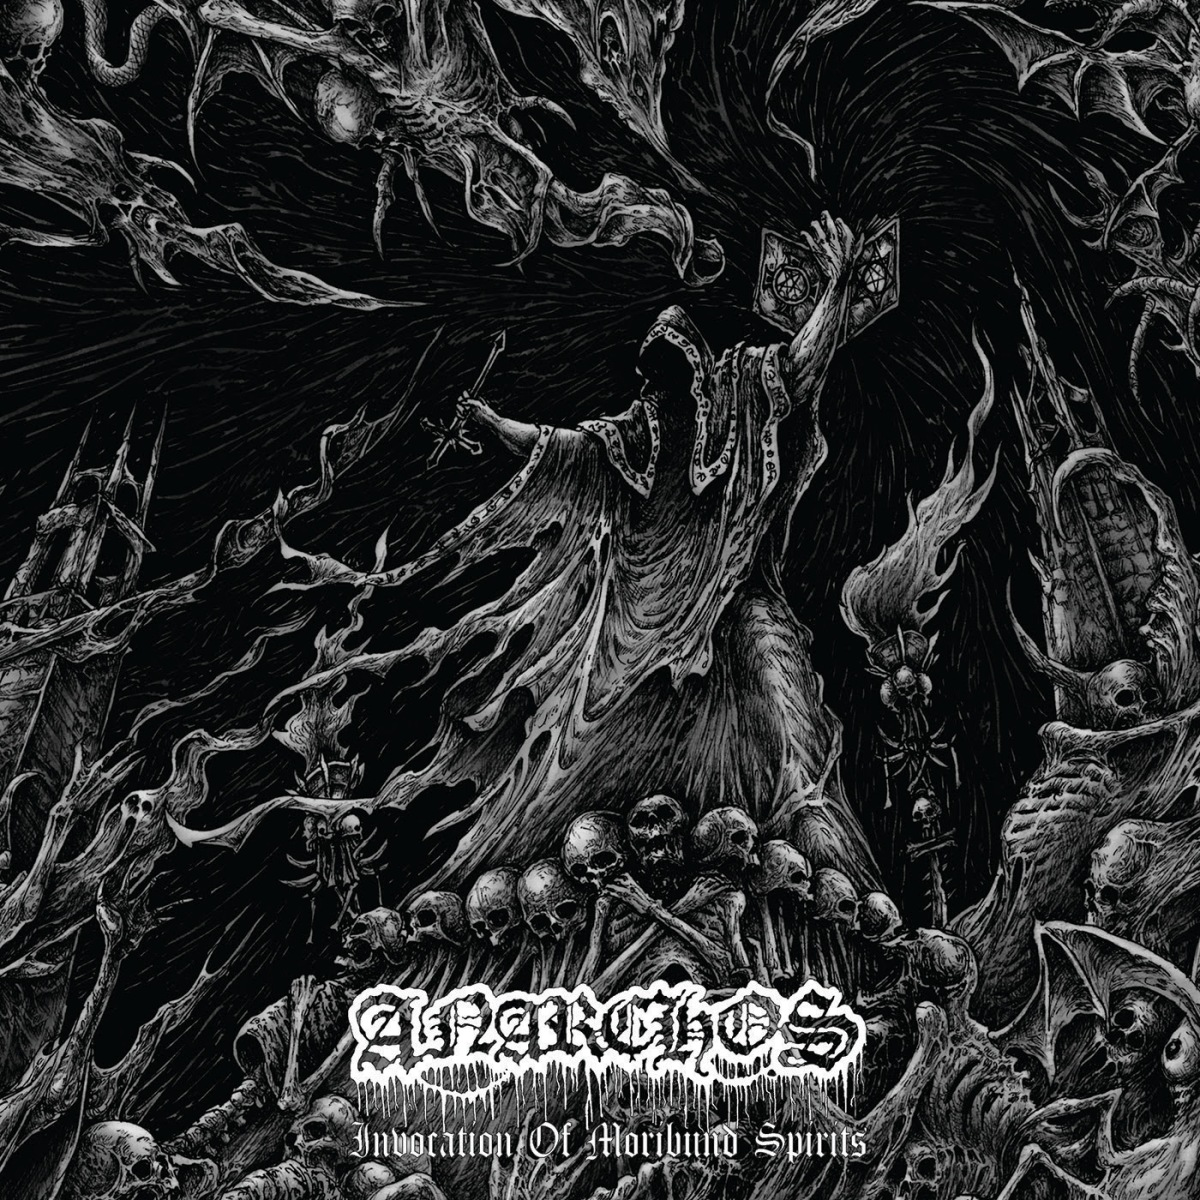 ANARCHOS set release date for BLOOD HARVEST debut, reveal first tracks